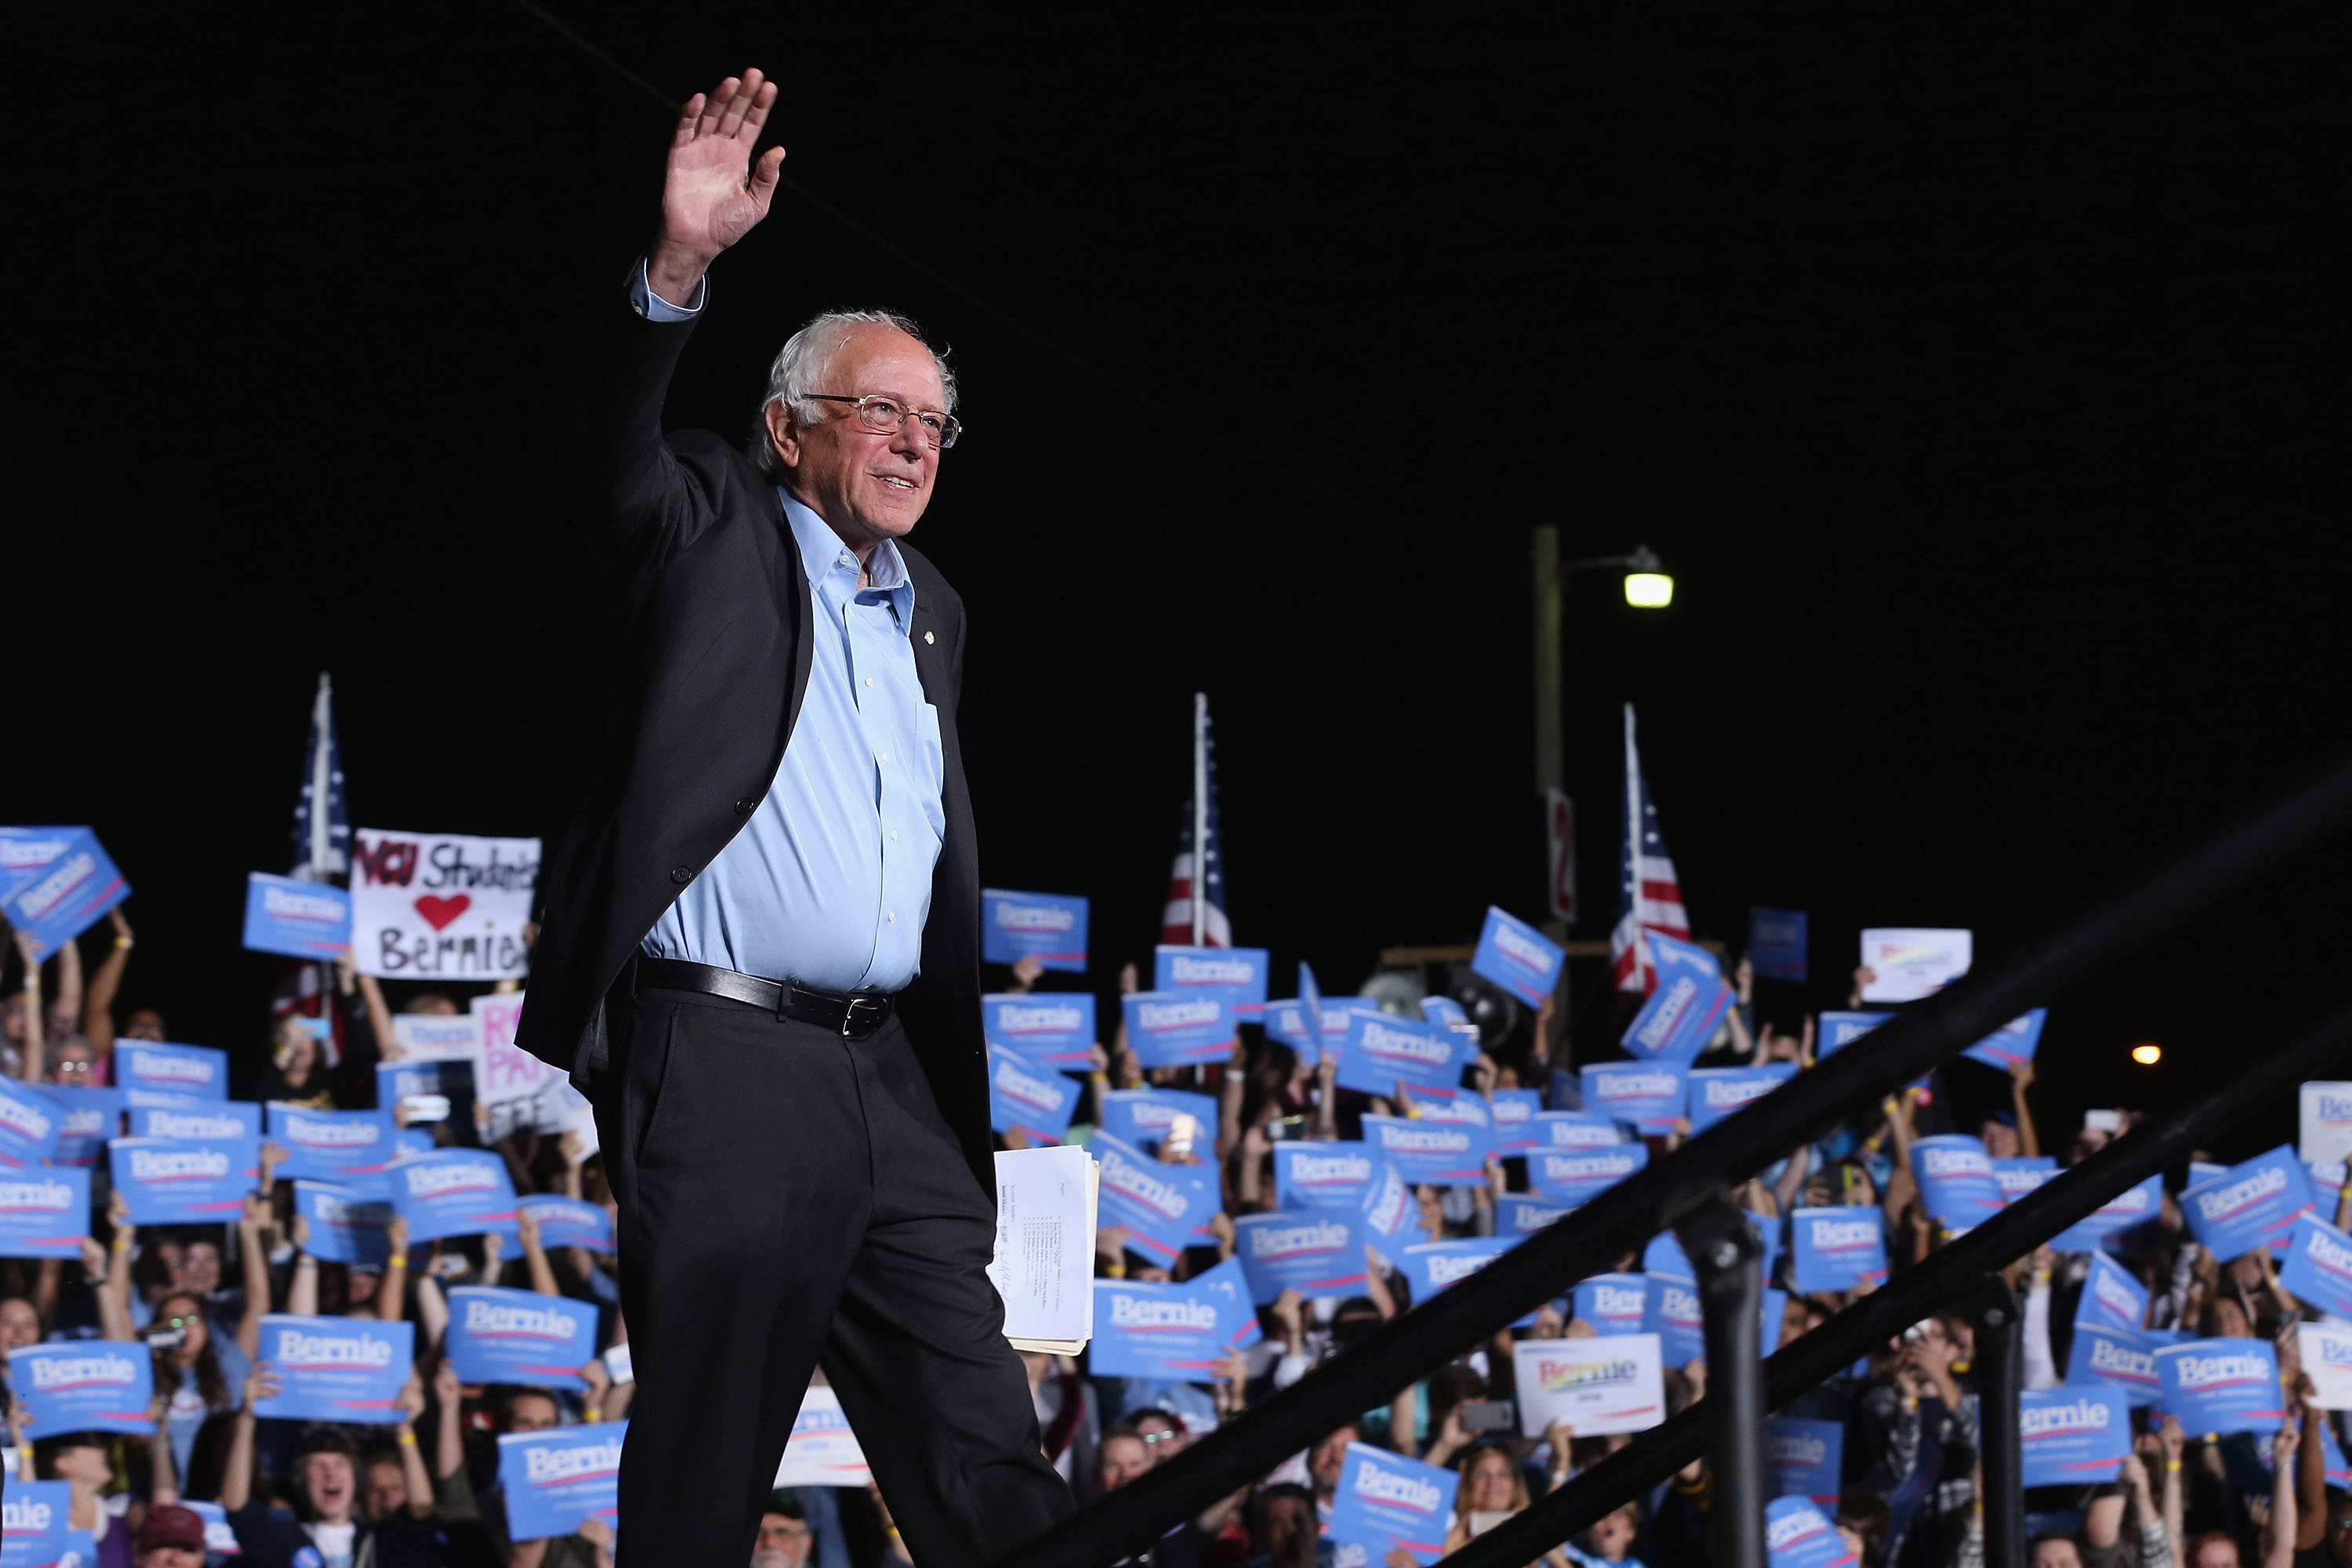 Bernie Sanders Holds Campaign Rally At Virginia Fairground